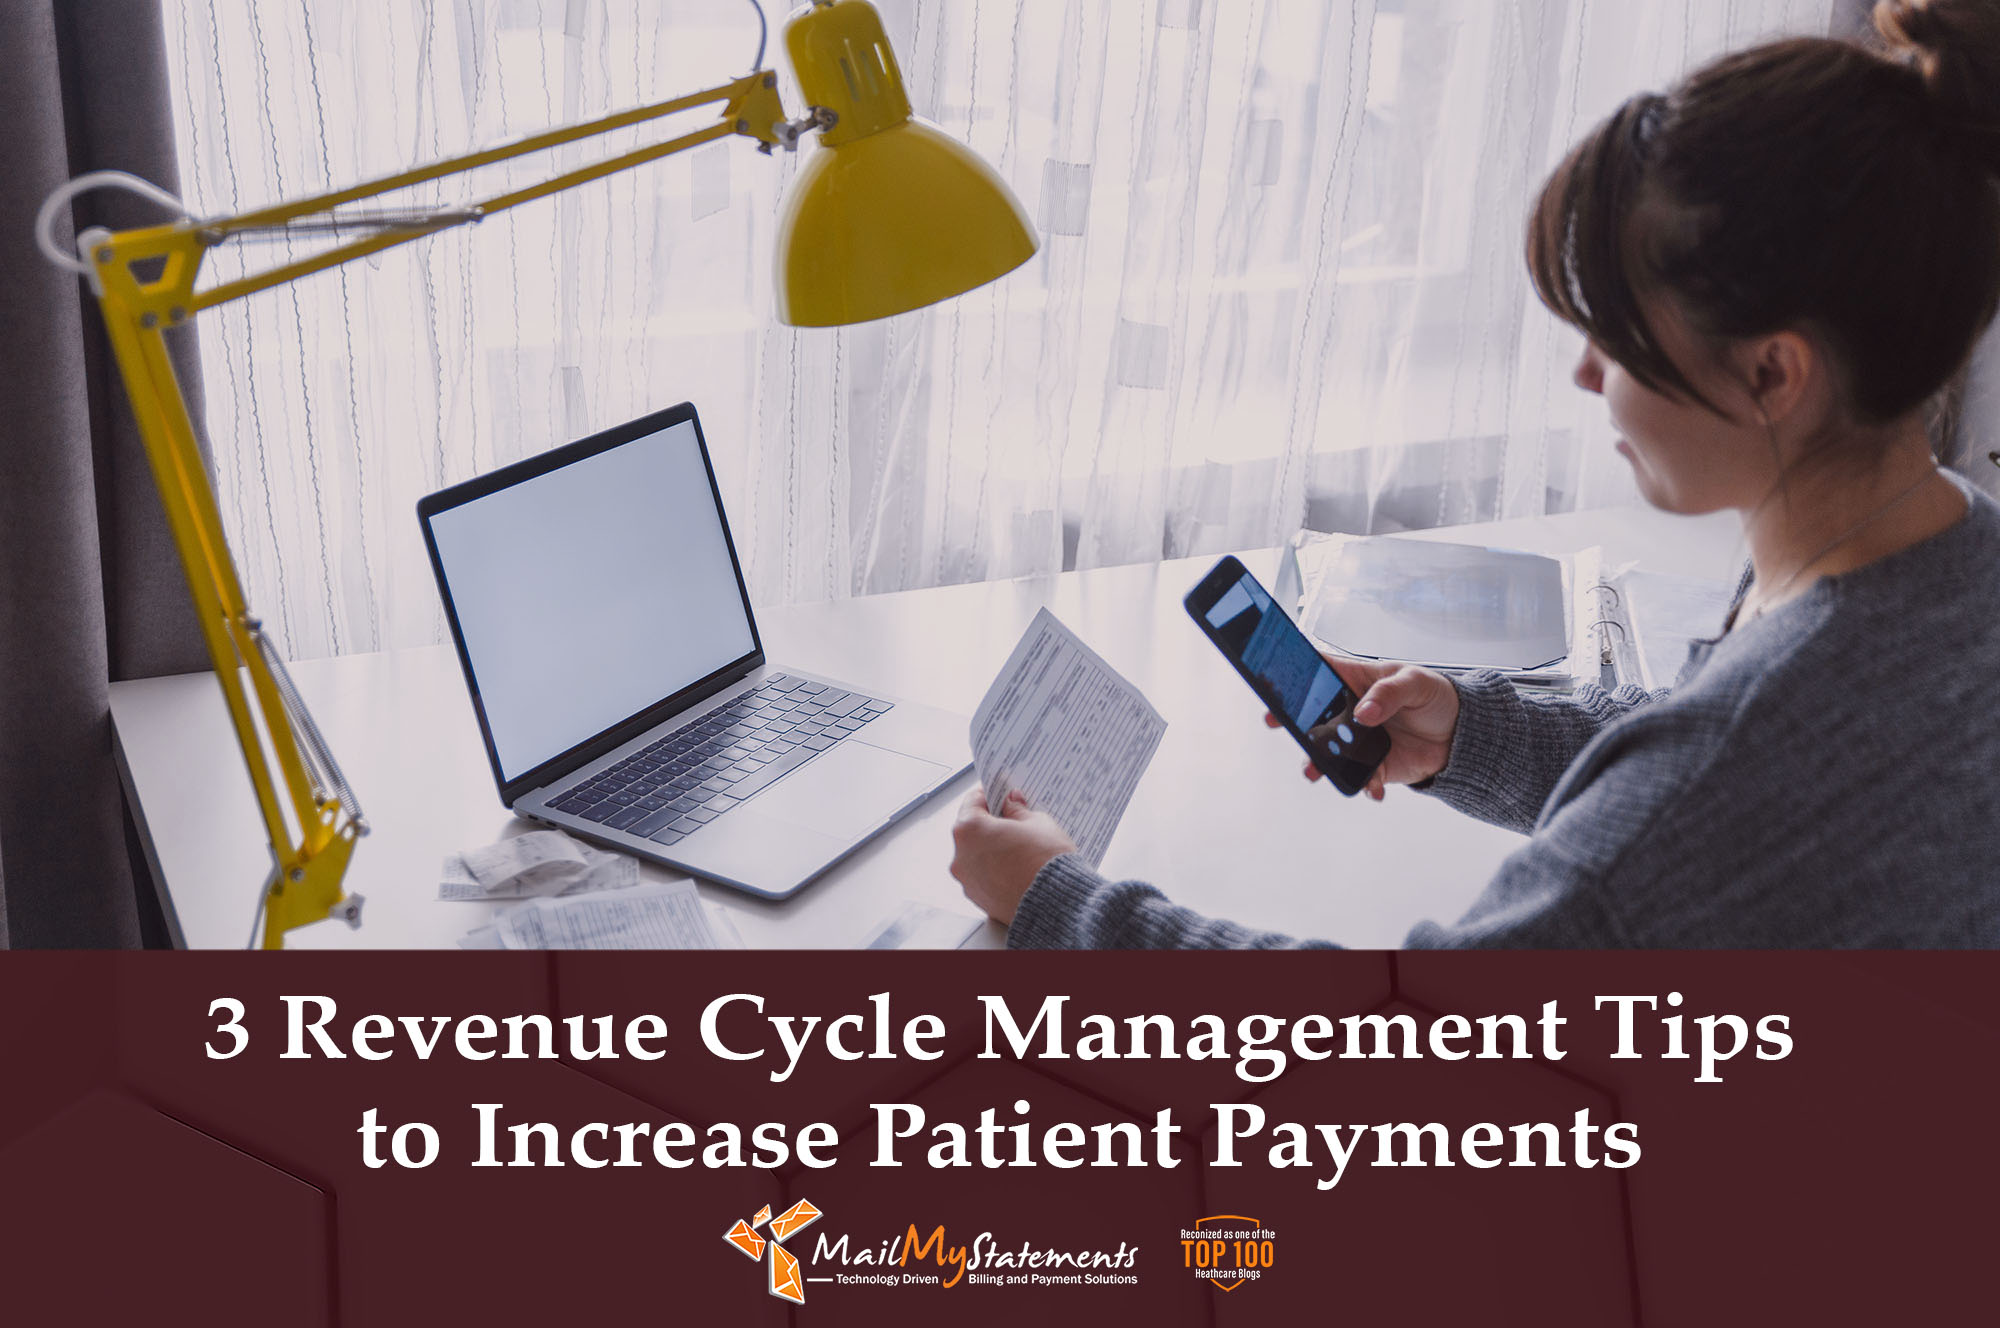 3 Revenue Cycle Management Tips to Increase Patient Payments